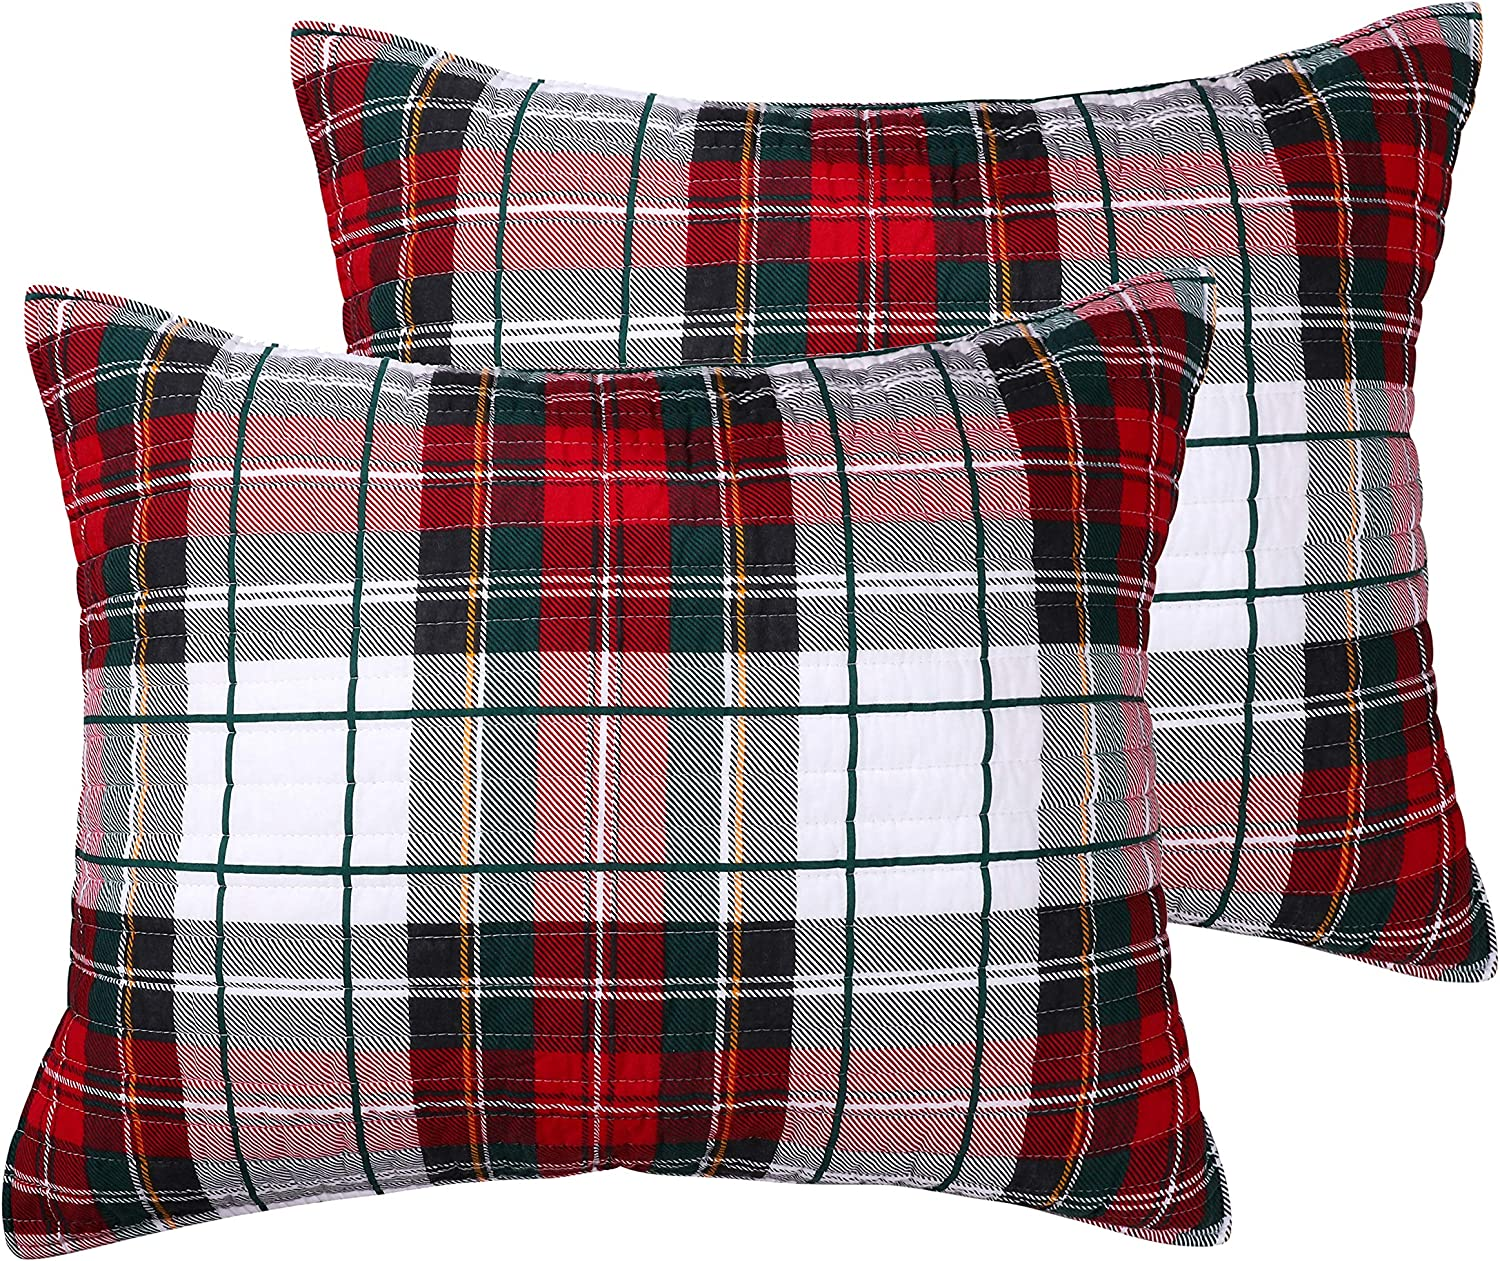 26x20in. Levtex home Thatch Home Spencer Plaid Spencer Plaid Quilted Standard Sham Pack of 2 Cotton//Poly - Reversible